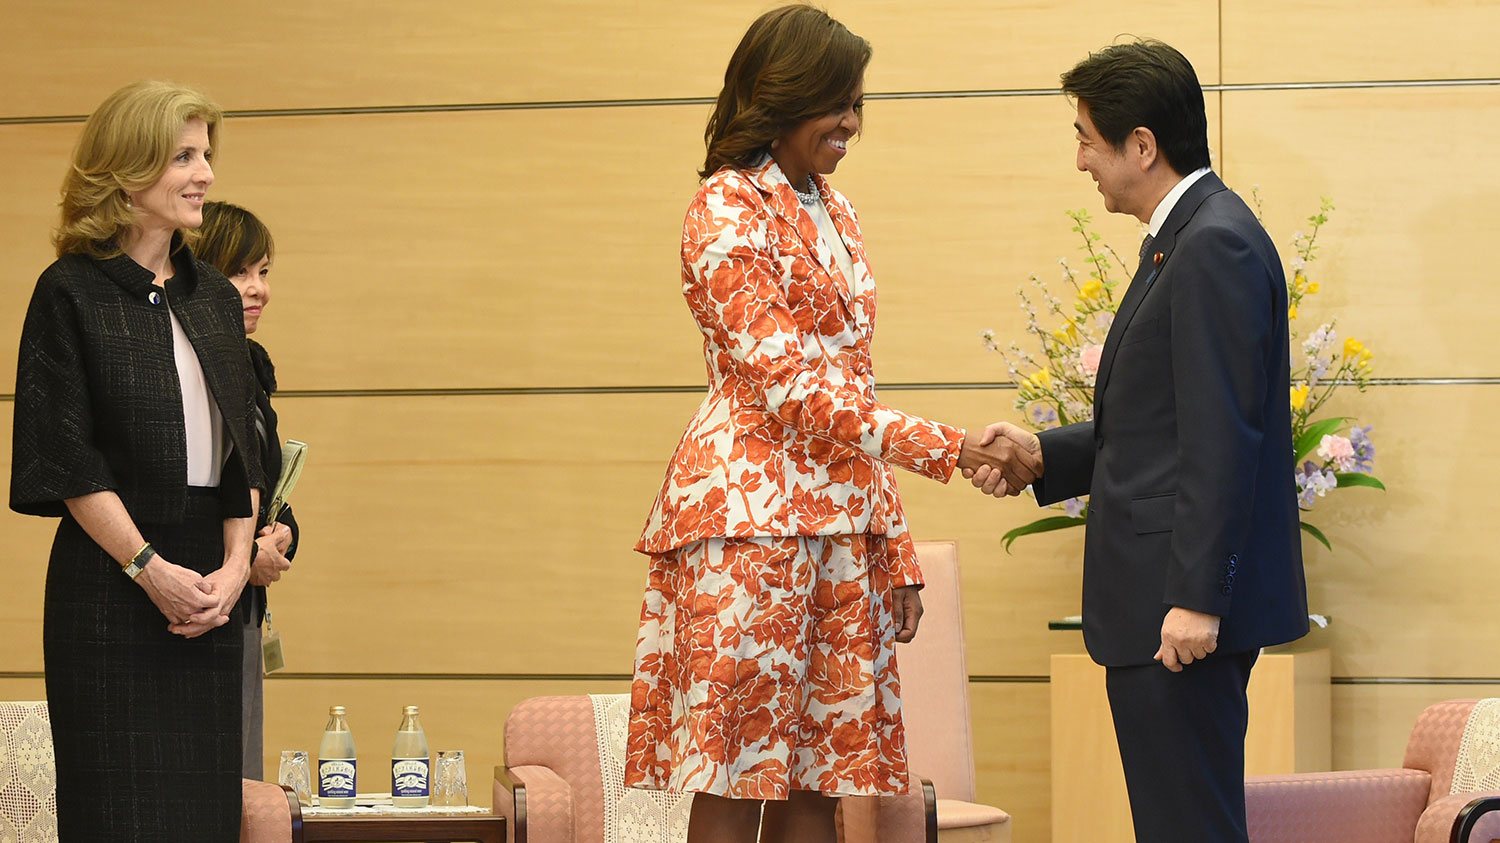 Obama meets with Prime Minister Shinzo Abe